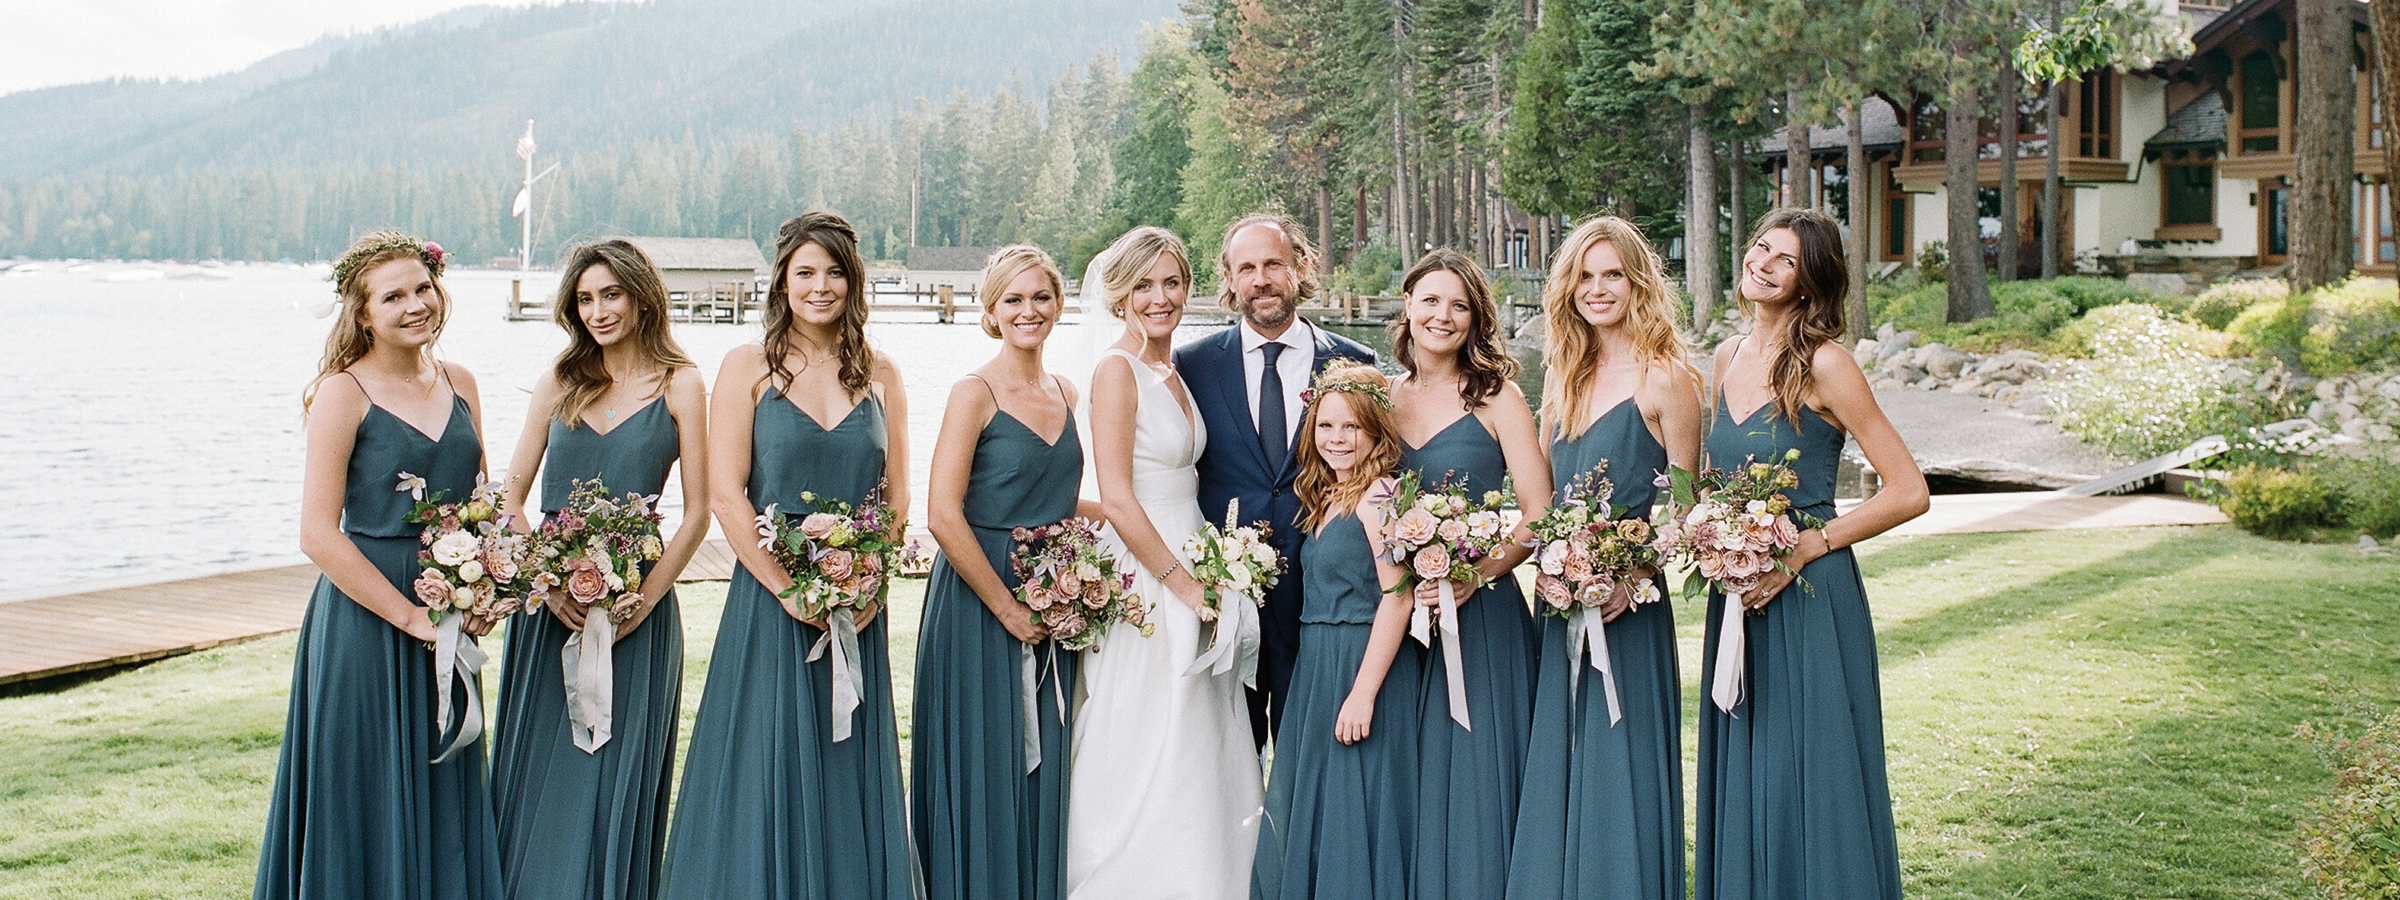 Flutter Magazine Issue 17 Lake Tahoe Fleur de lac estates wedding – Jenny Yoo bridesmaid dresses